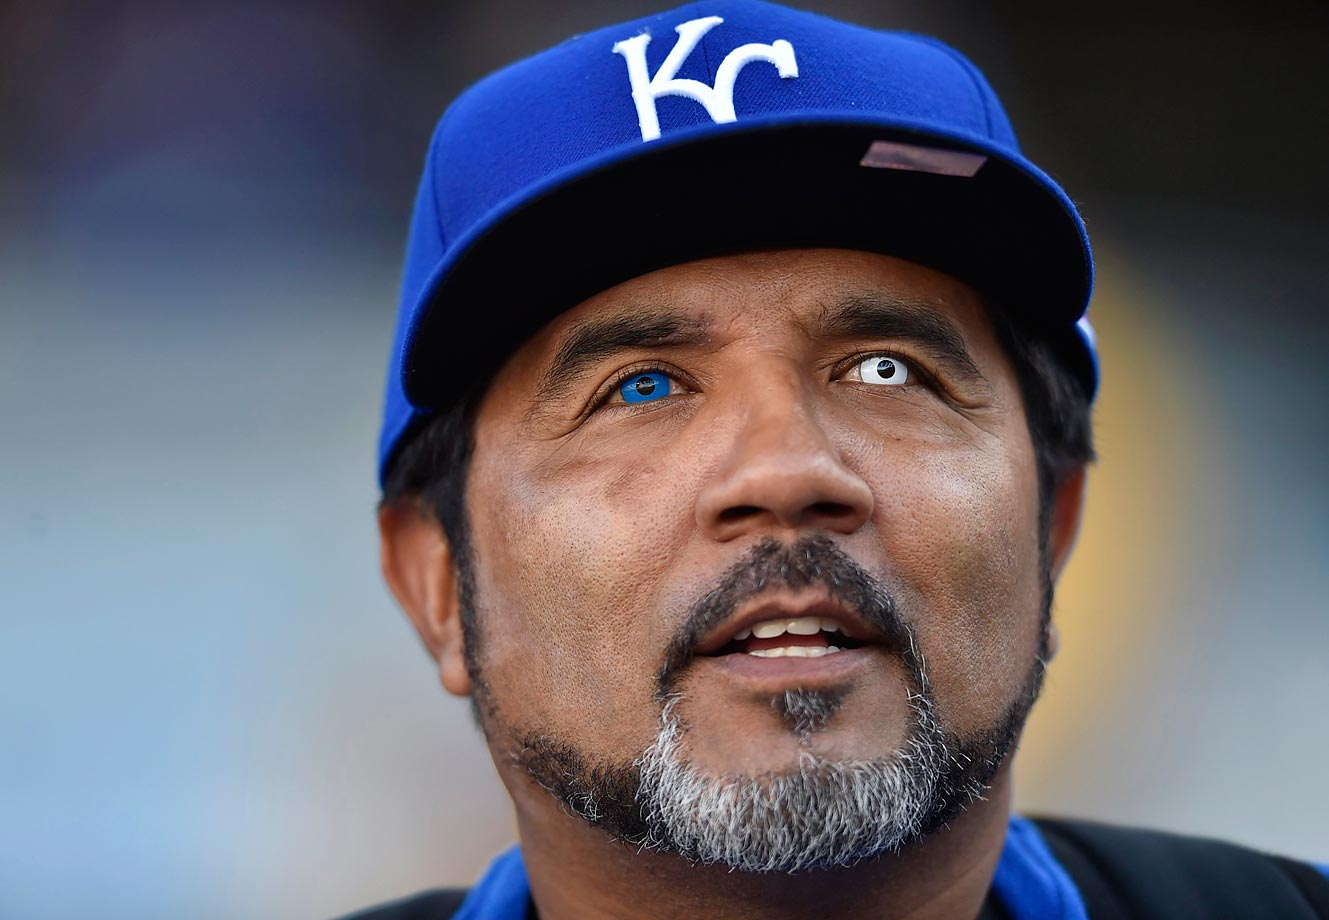 Jimmy Reyes wearing special blue and white contacts at an ALDS playoff game.